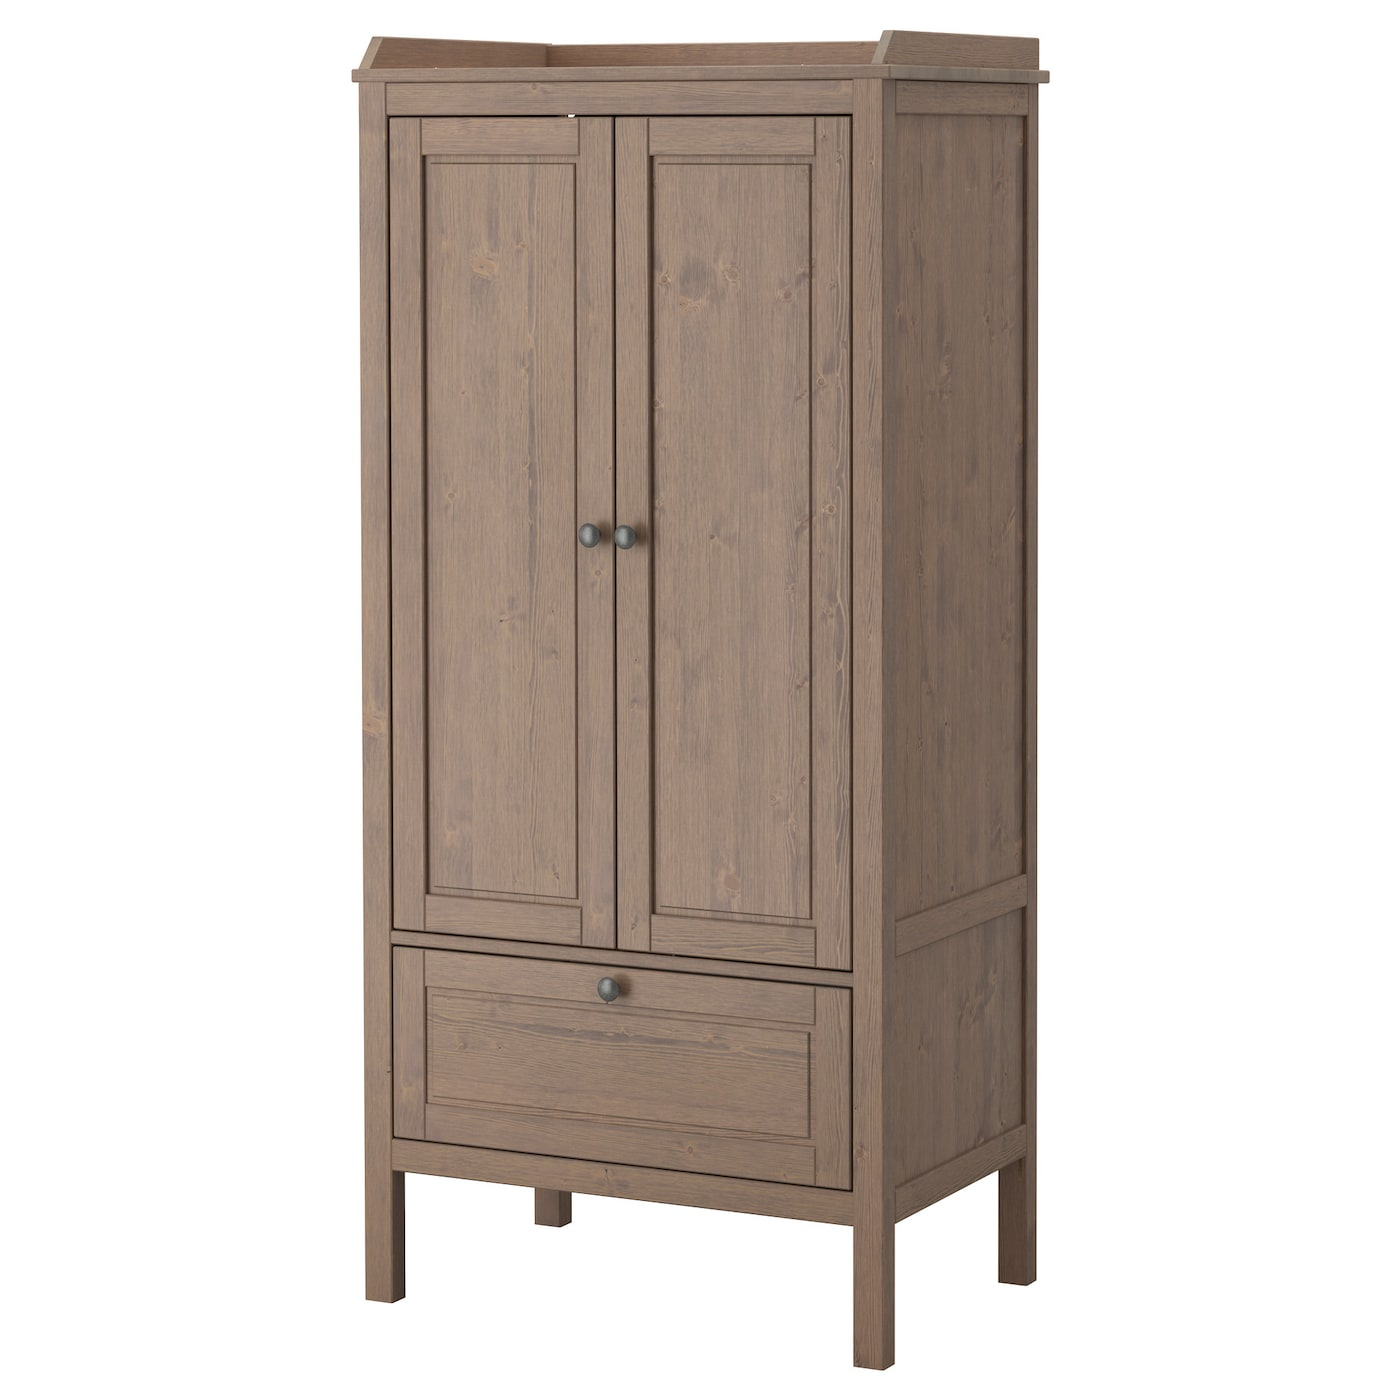 Sundvik wardrobe grey brown 80x50x171 cm ikea for Ikea grey bedroom furniture